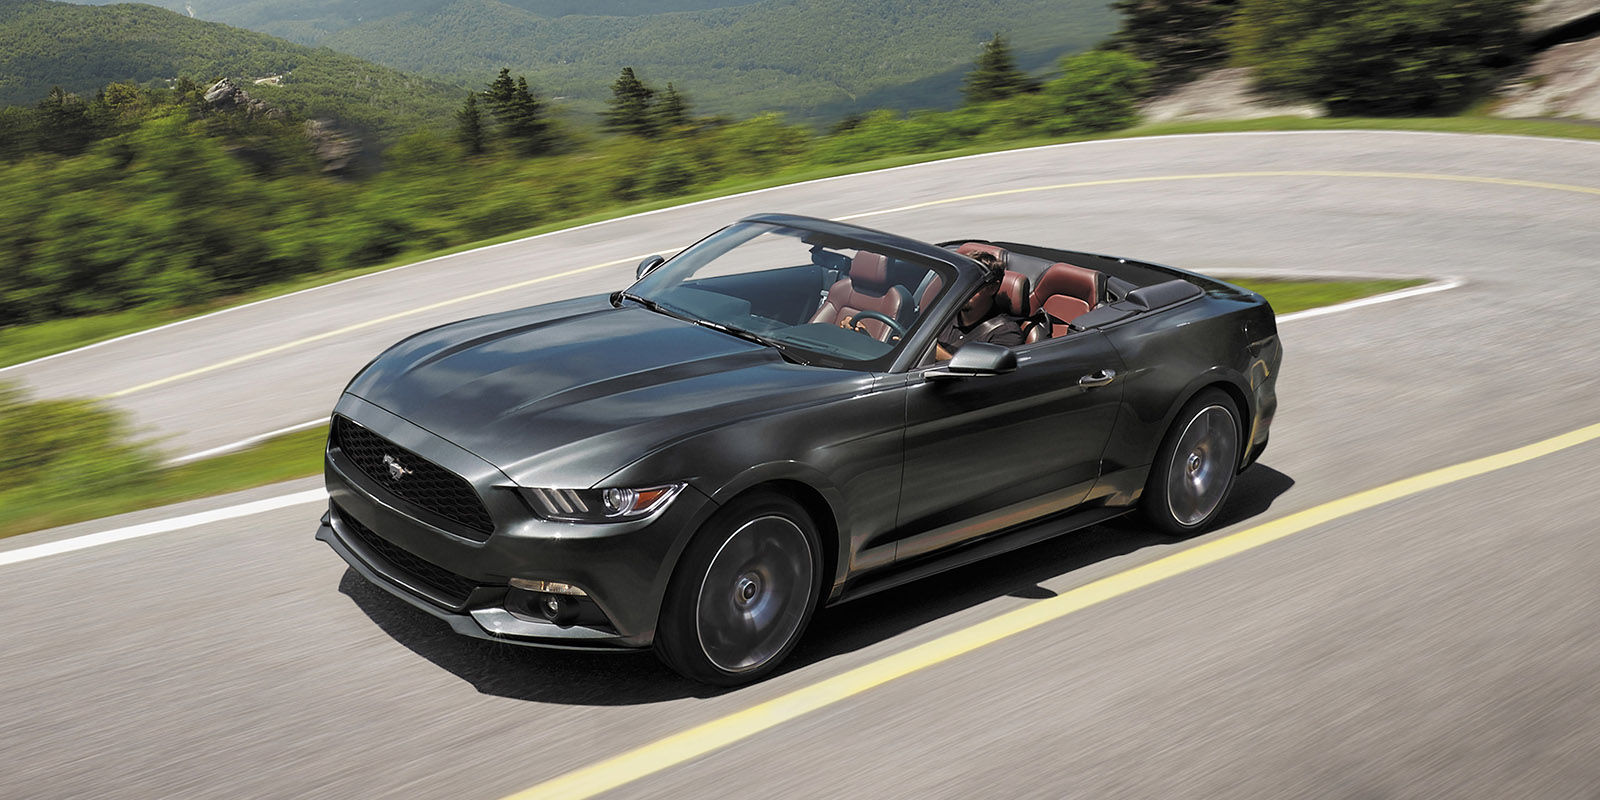 2018 Ford Mustang Updates Mustang Gets 10 Speed Magneride